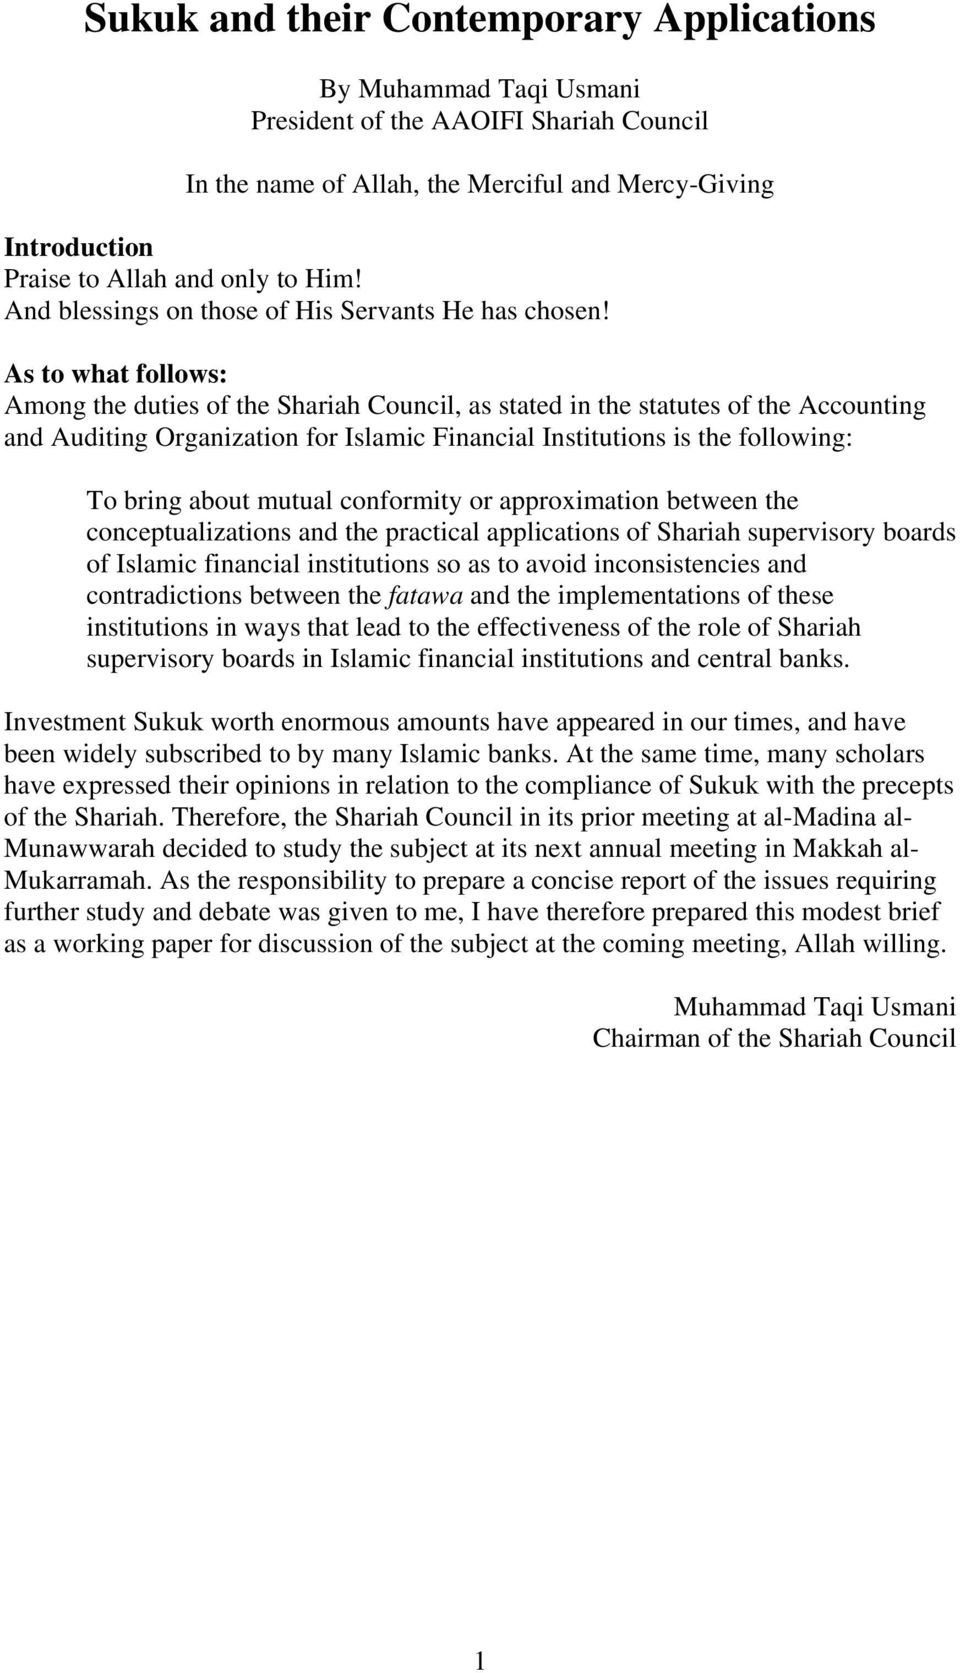 As to what follows: Among the duties of the Shariah Council, as stated in the statutes of the Accounting and Auditing Organization for Islamic Financial Institutions is the following: To bring about